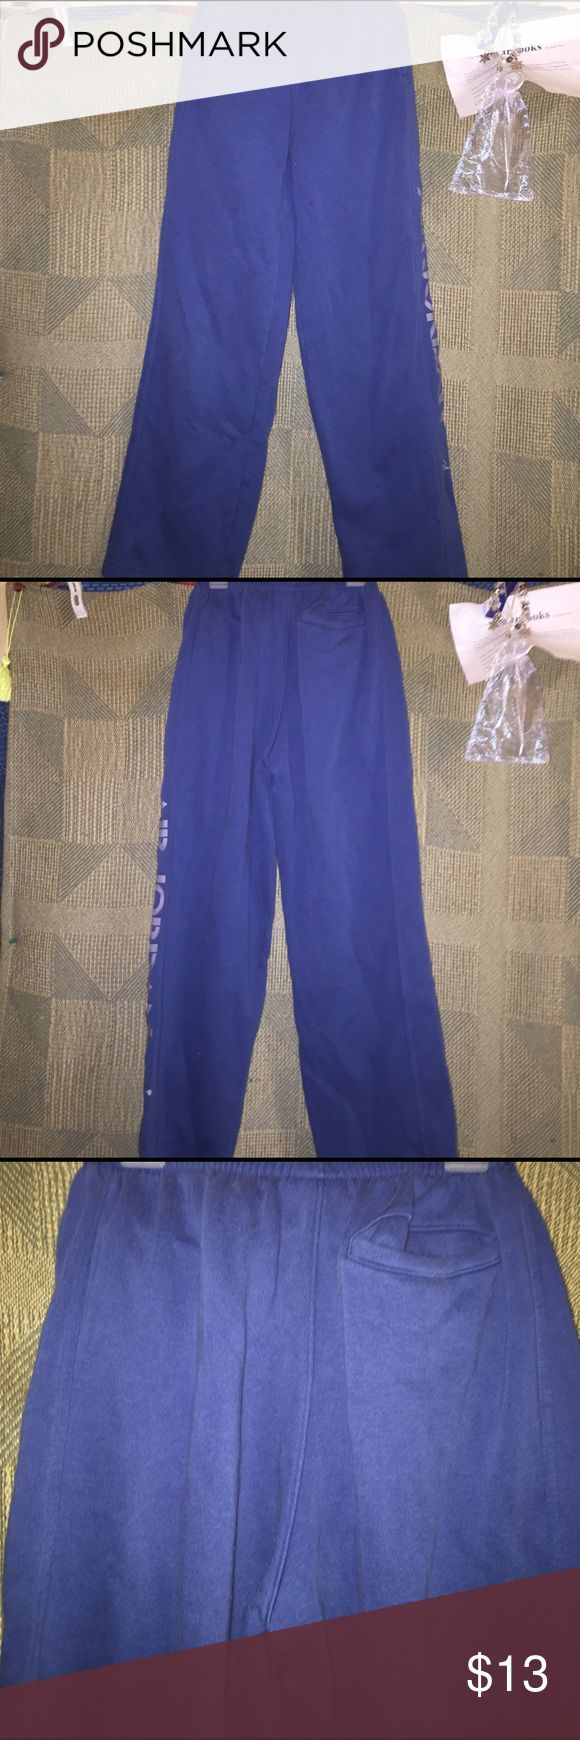 Air Jordan sweats boys size large blue with grey Boys size large air Jordan sweat pants blue with grey writing down the side of leg, great condition two pockets in front and one back pocket, clean but may want to wash before wear🚬🐱🏡 Air Jordan Bottoms Sweatpants & Joggers